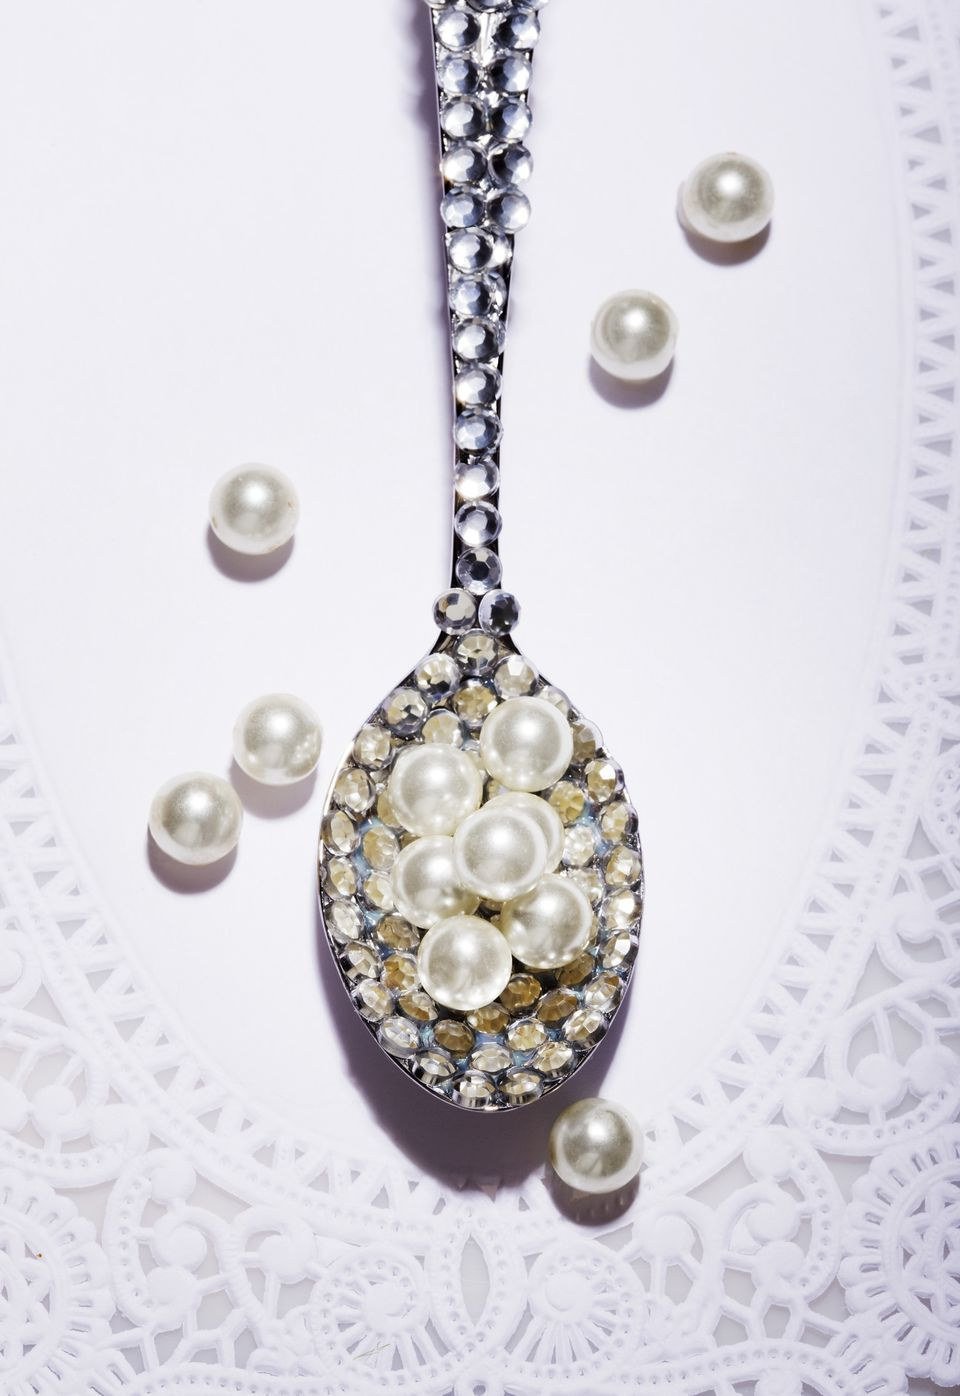 Diamond covered spoon full of pearls